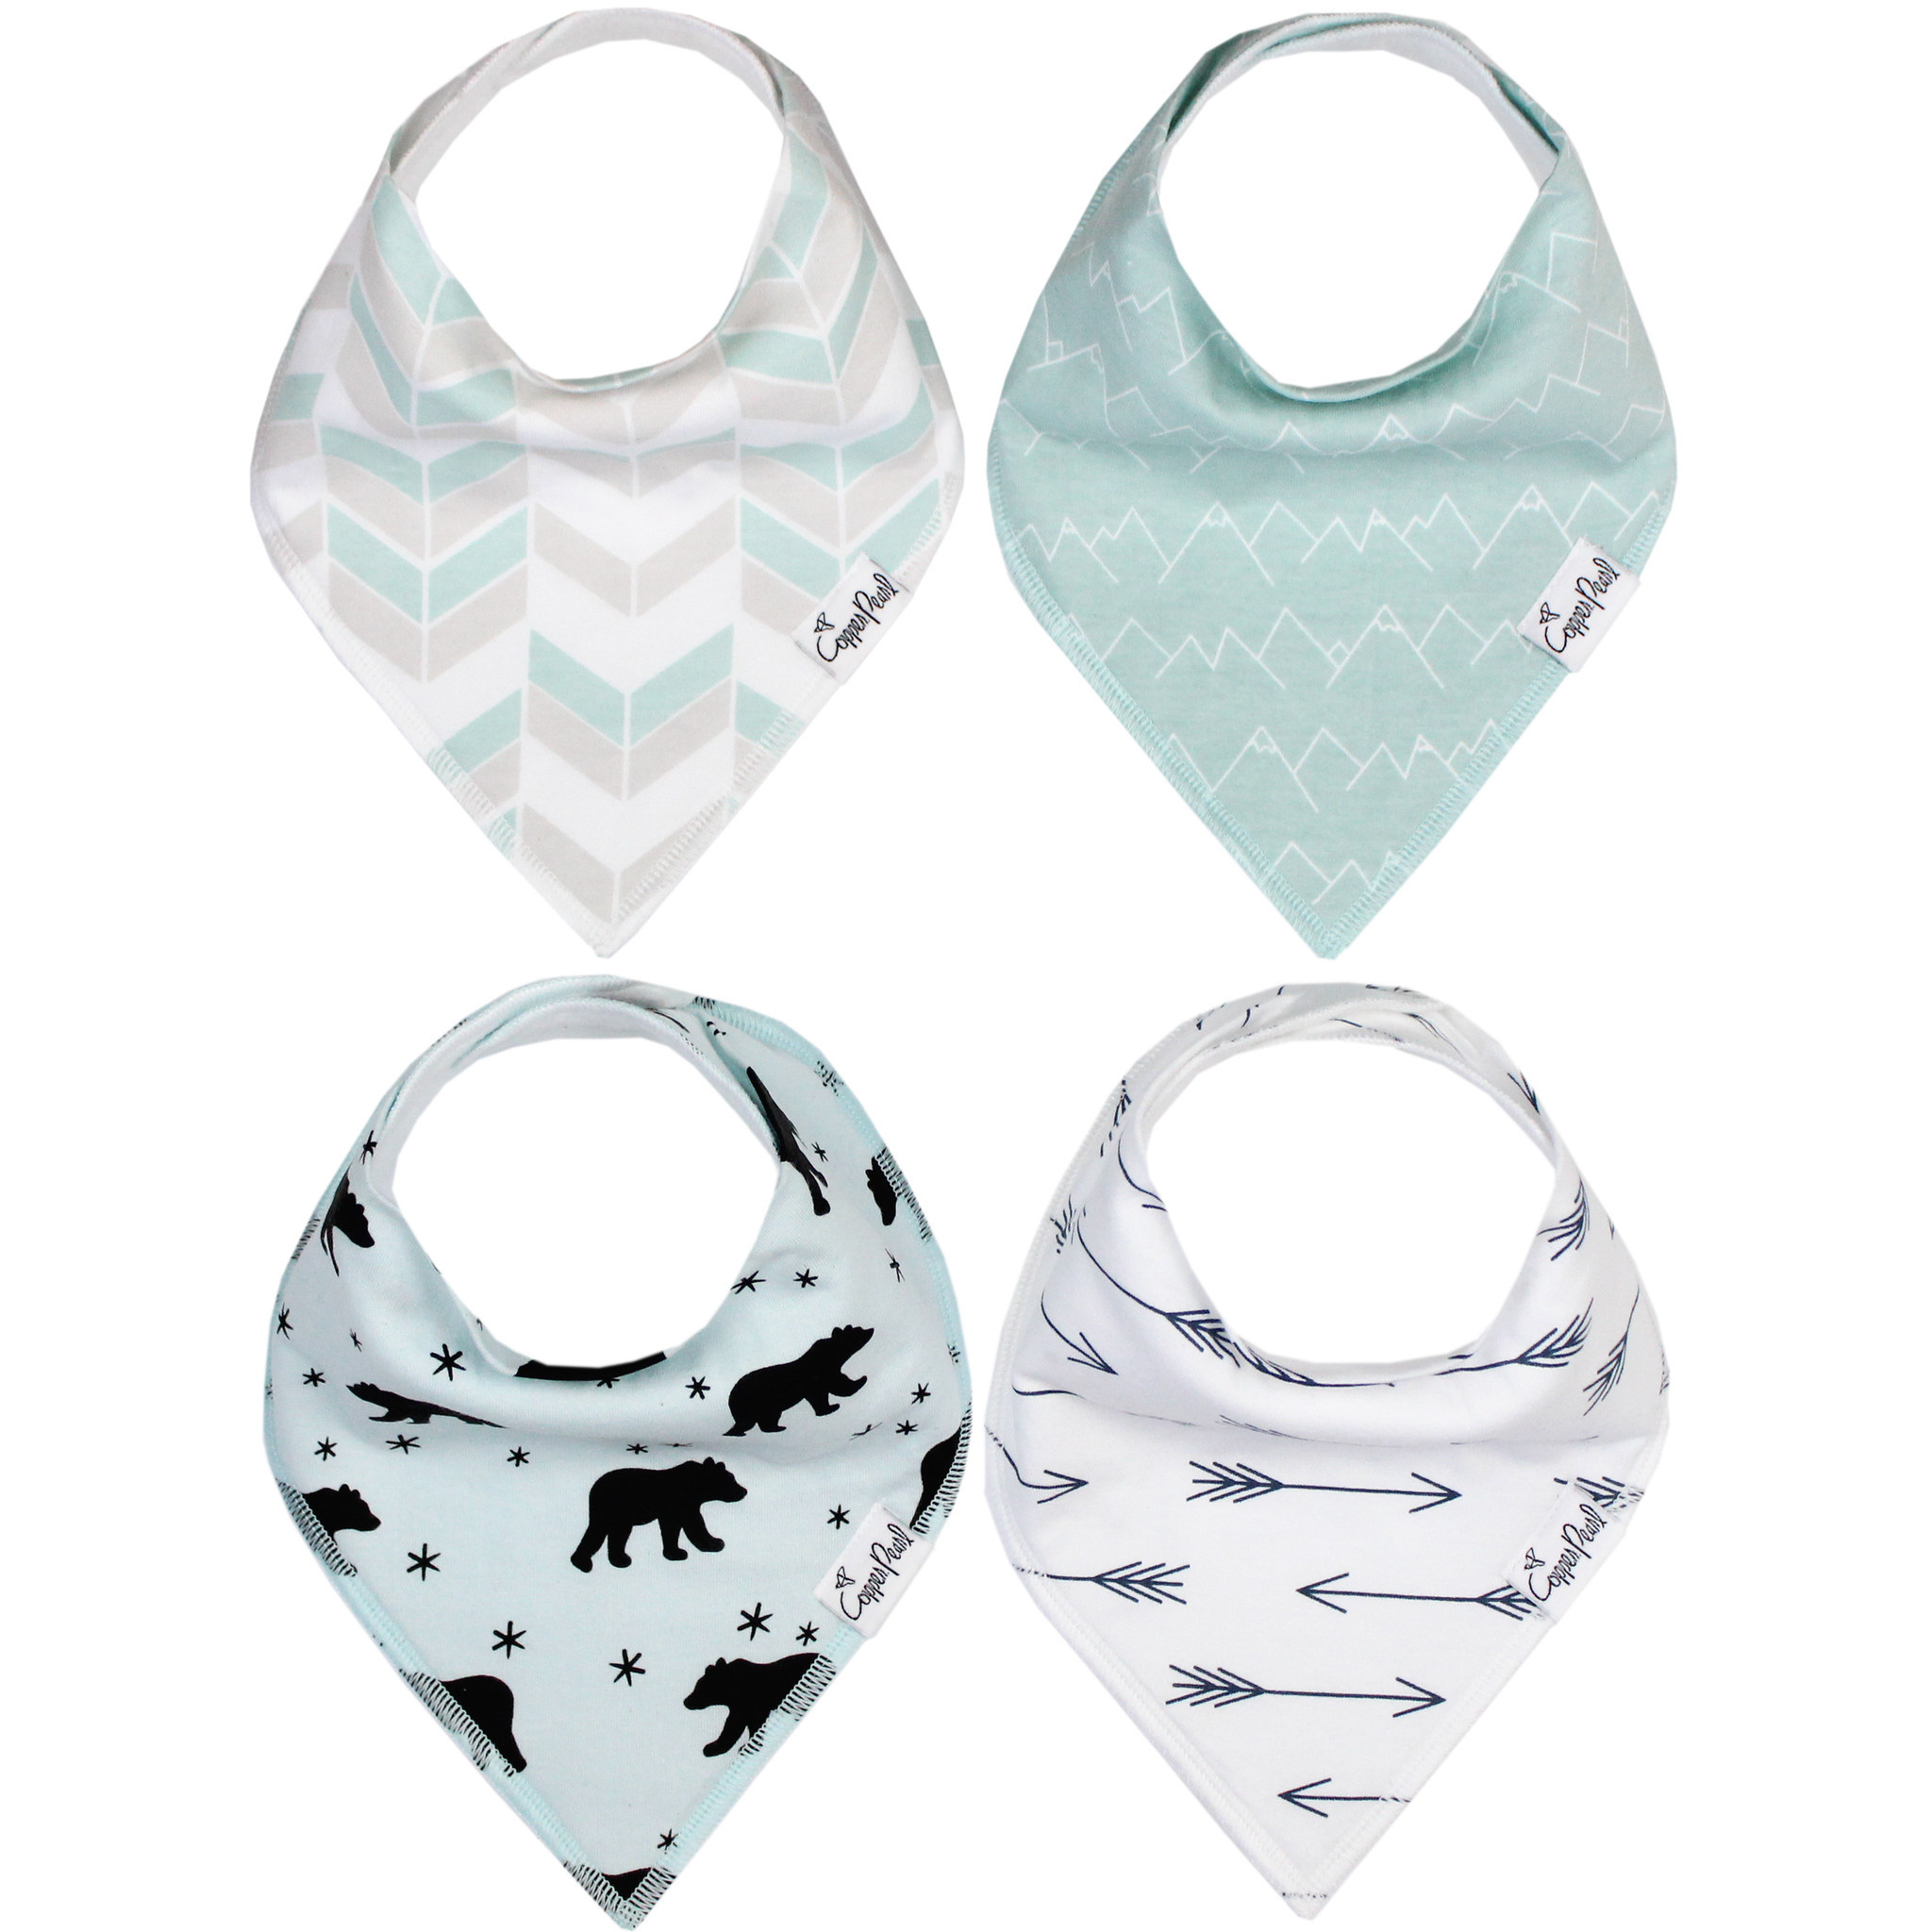 Copper Pearl Bibs - Archer Set - 4 pack